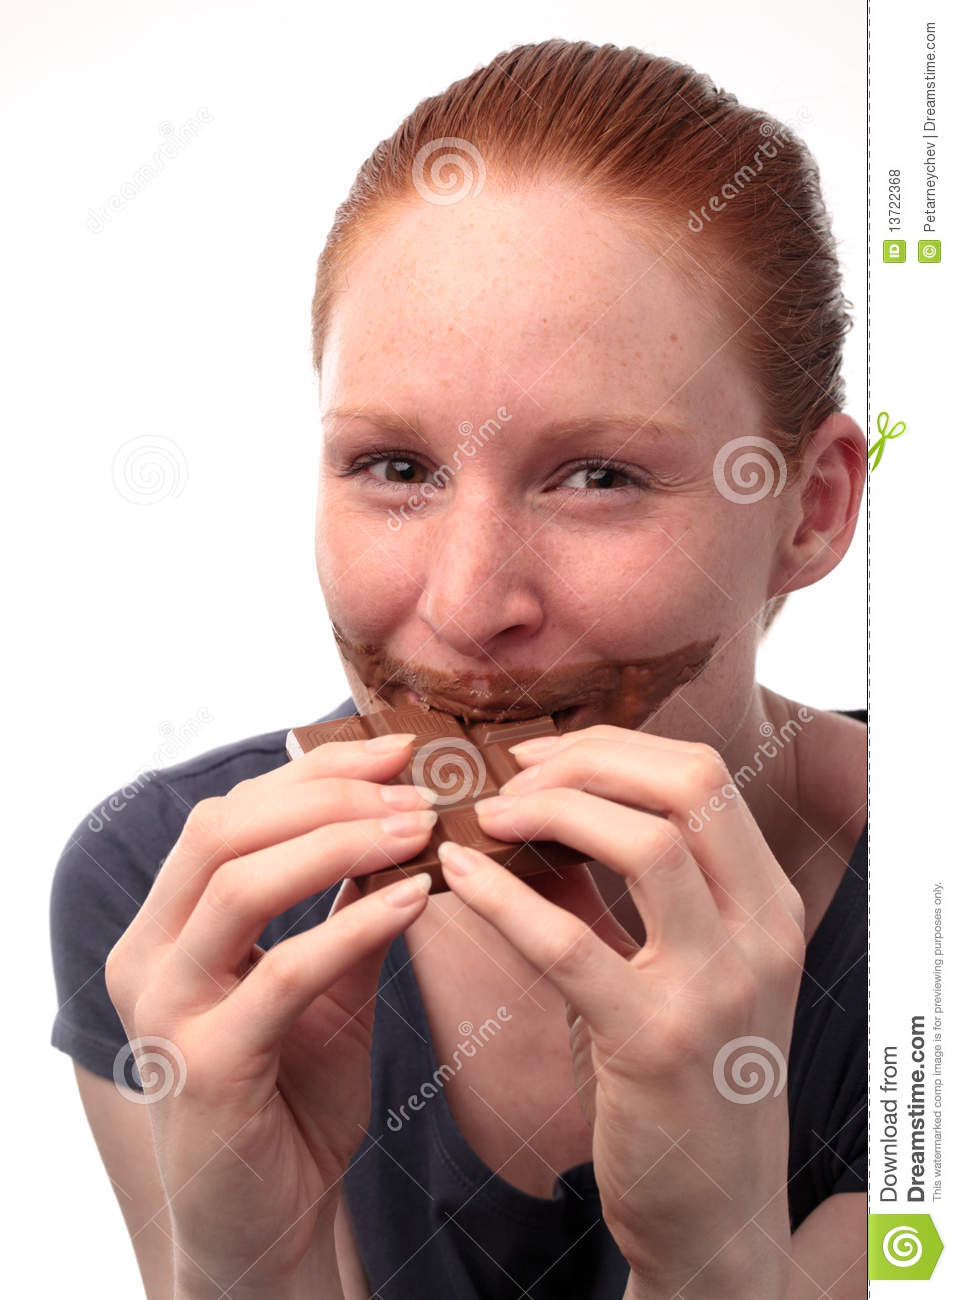 Craving For Chocolate Royalty Free Stock Photos - Image: 13722368